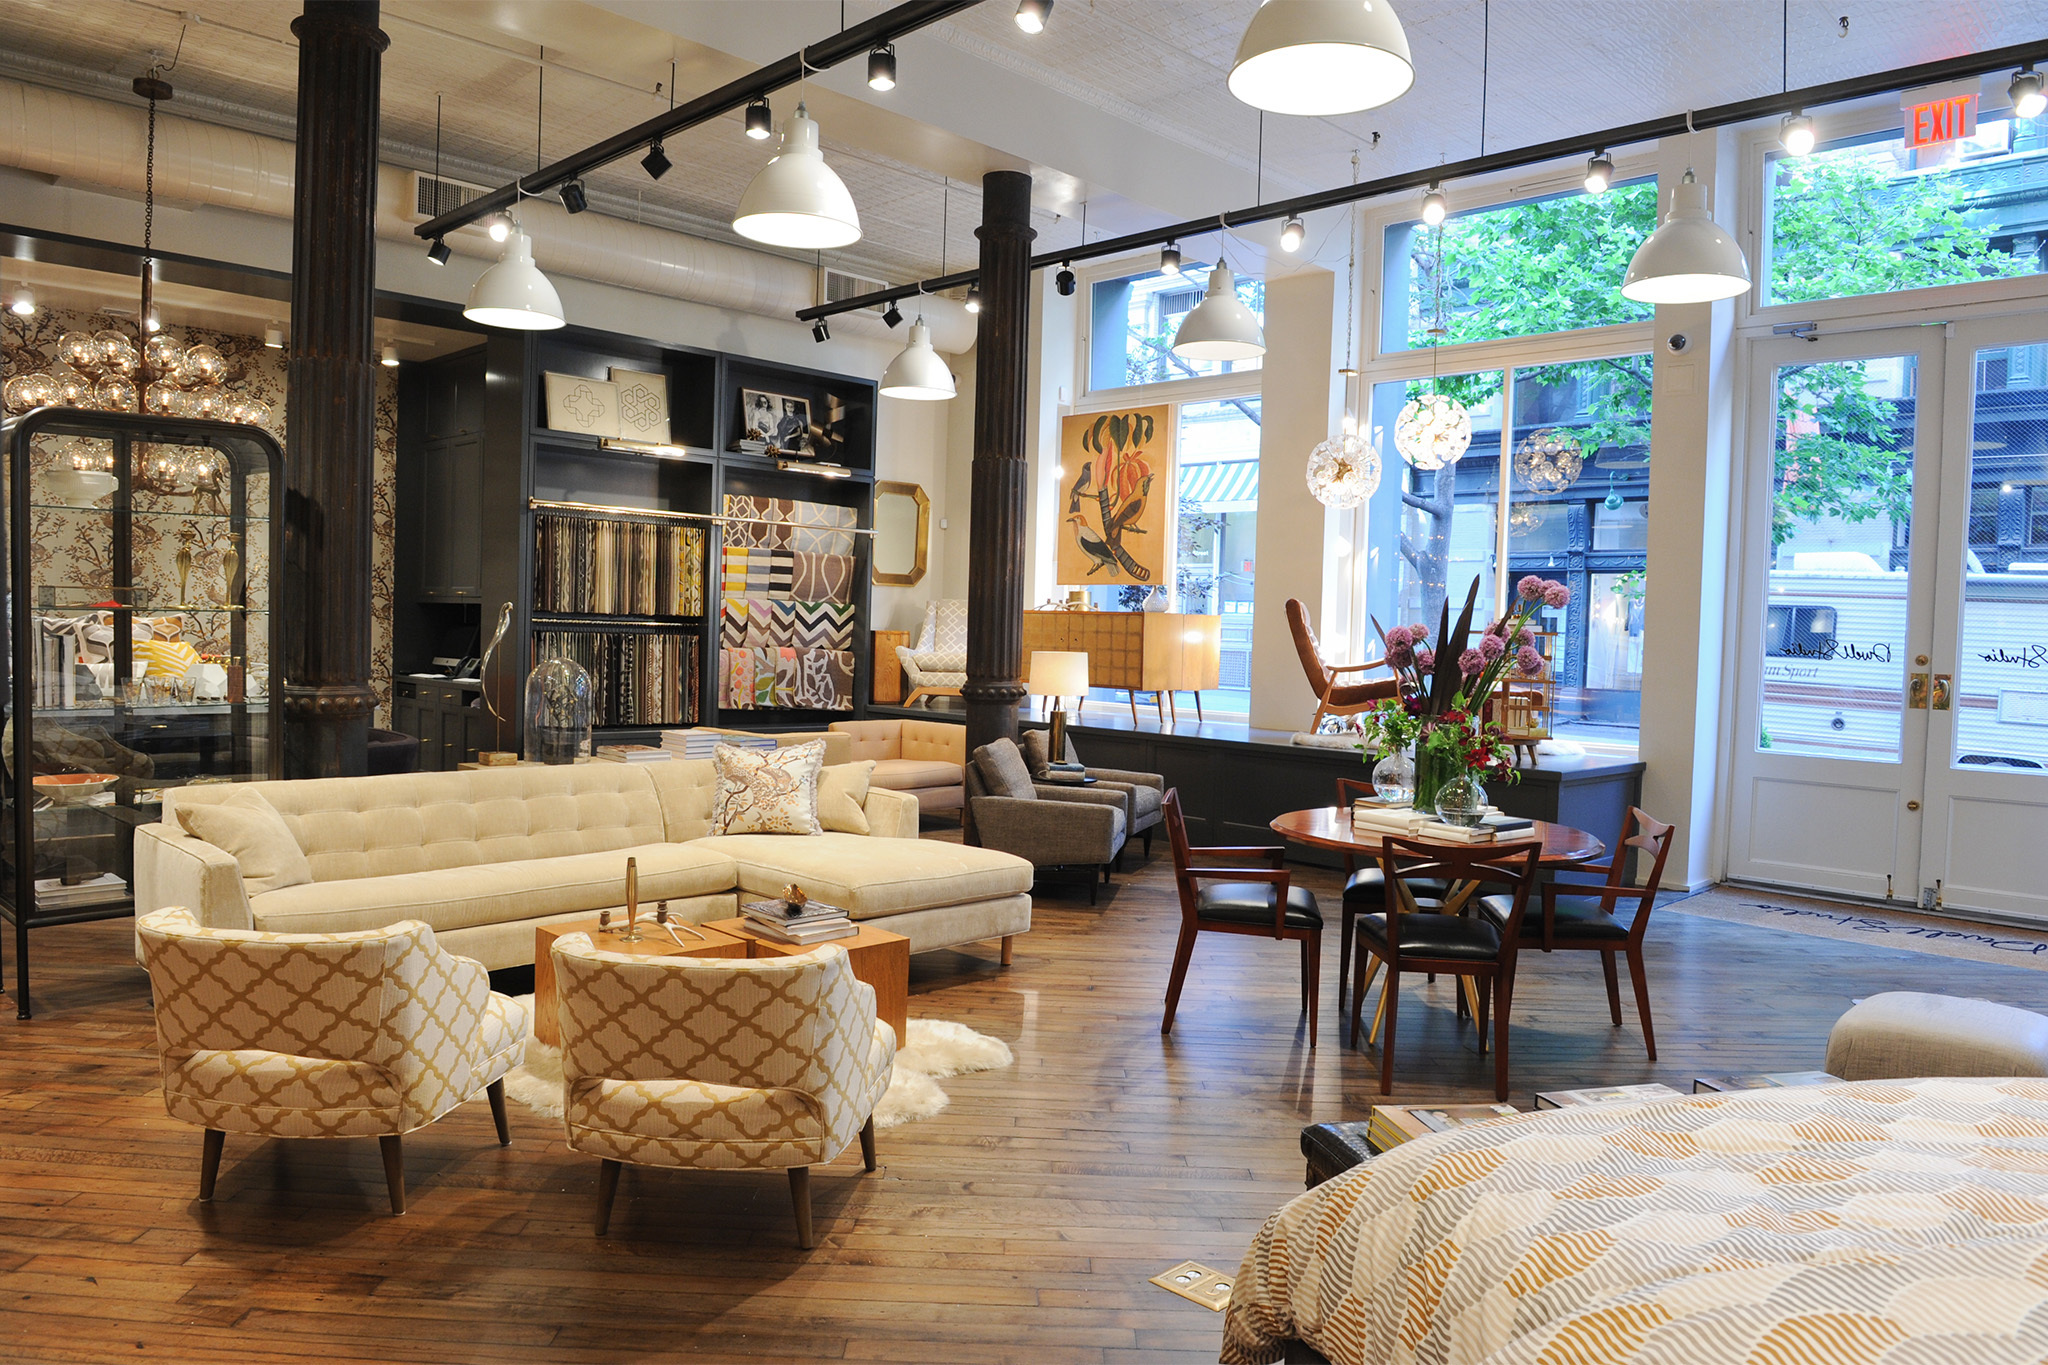 decor stores in NYC for decorating ideas and home furnishings